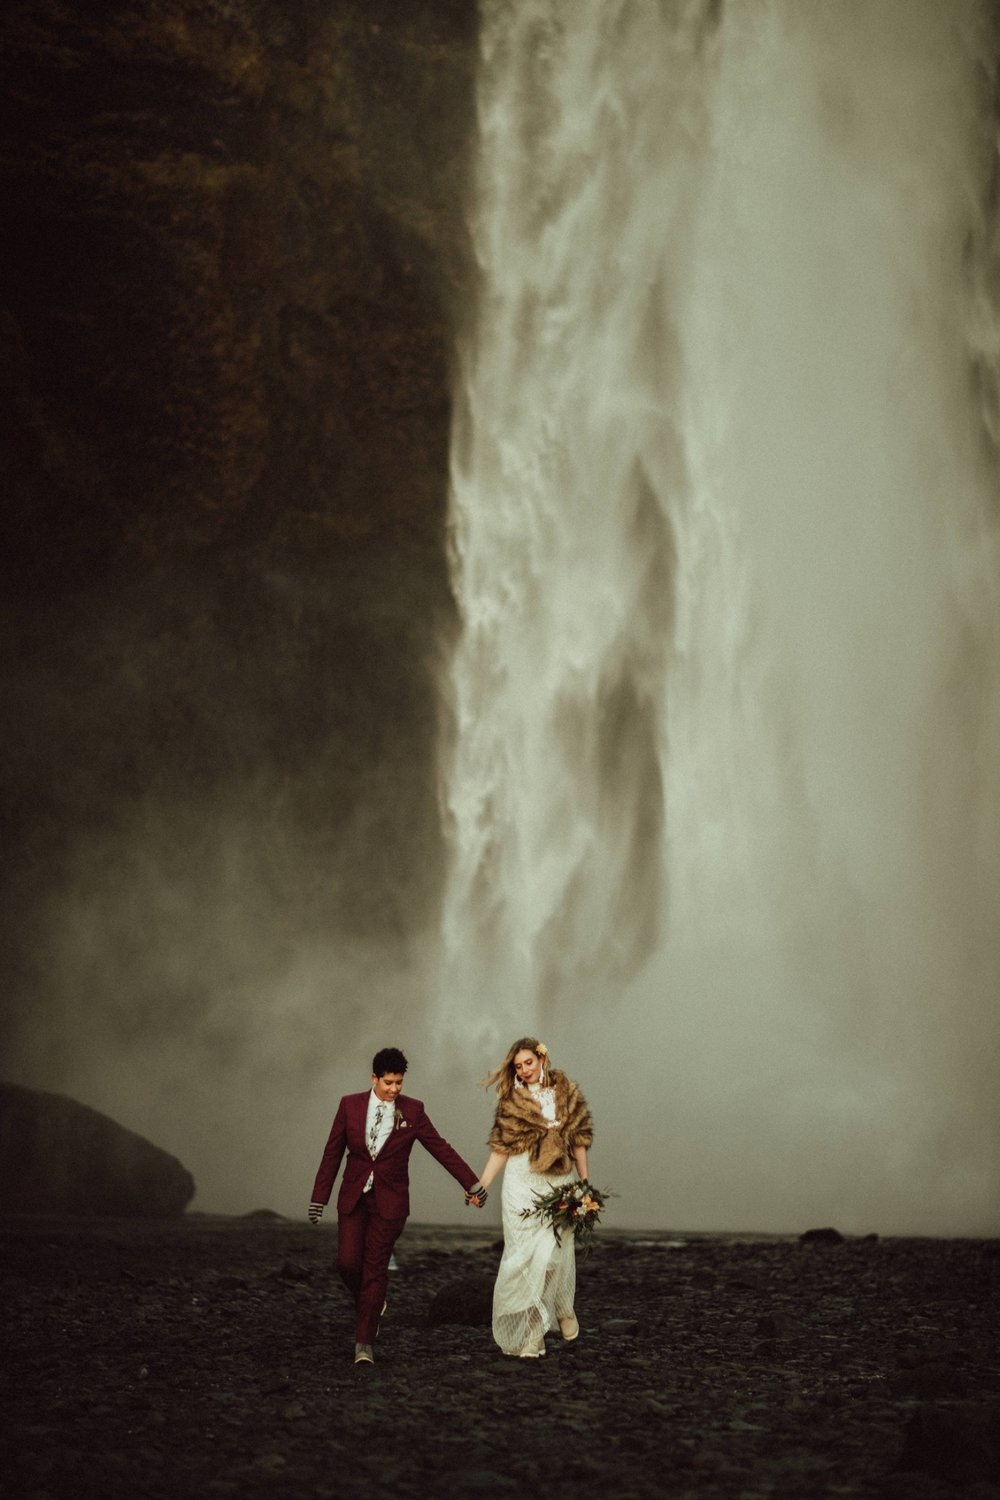 Leigh & Molly - A completely private elopement on a black sand beach during sunset.